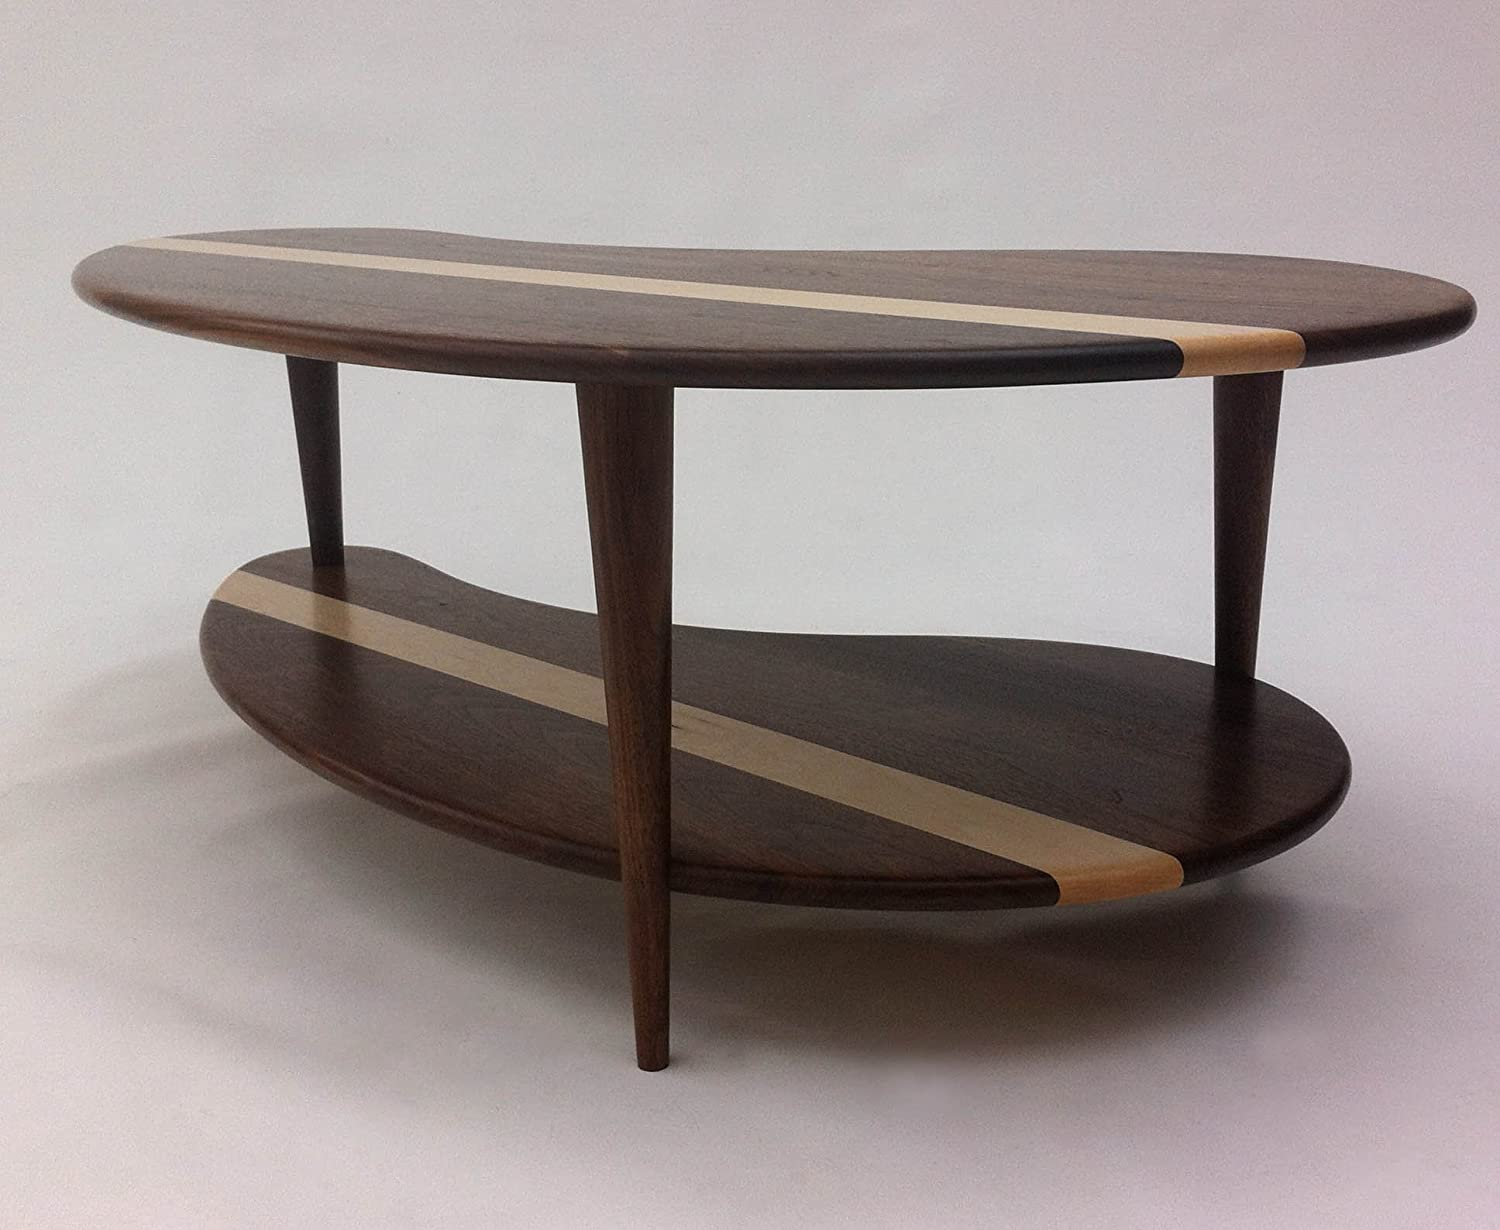 Astonishing Amazon Com Mid Century Modern Coffee Cocktail Table Solid Andrewgaddart Wooden Chair Designs For Living Room Andrewgaddartcom